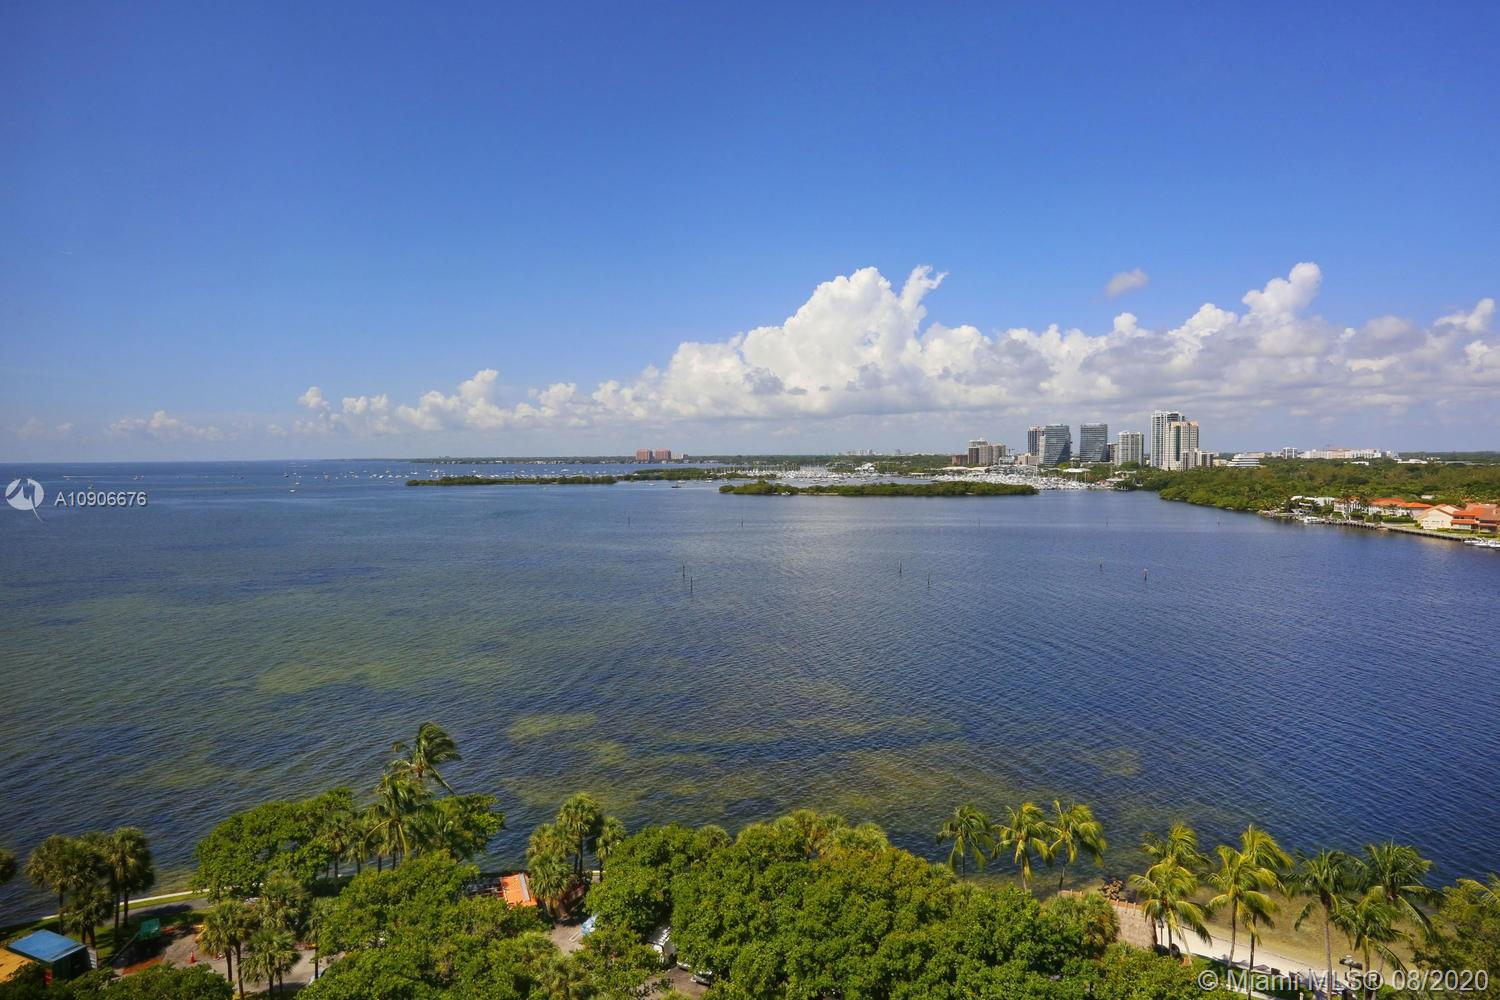 Enjoy unobstructed views of Biscayne Bay and the Grove skyline from this 15th floor residence. Light-filled living spaces open to covered balcony, ideal for enjoying the bay breezes. Updates include travertine flooring & custom built-ins throughout. Stunning kitchen feature European-style cabinetry, quartz countertops & top-of-the-line appliances including wine storage. Large master suite with walk-in closet & luxurious bath w/ soaking tub and glass-enclosed shower. First-class building amenities include concierge, on-site restaurants, 14 Har-Tru tennis courts, marina, private beach, jogging path, spa, fitness center & heated pool. Just across the bridge from the Grove village center's galleries, boutiques and cafes. Minutes to downtown, MIA and the Beaches.